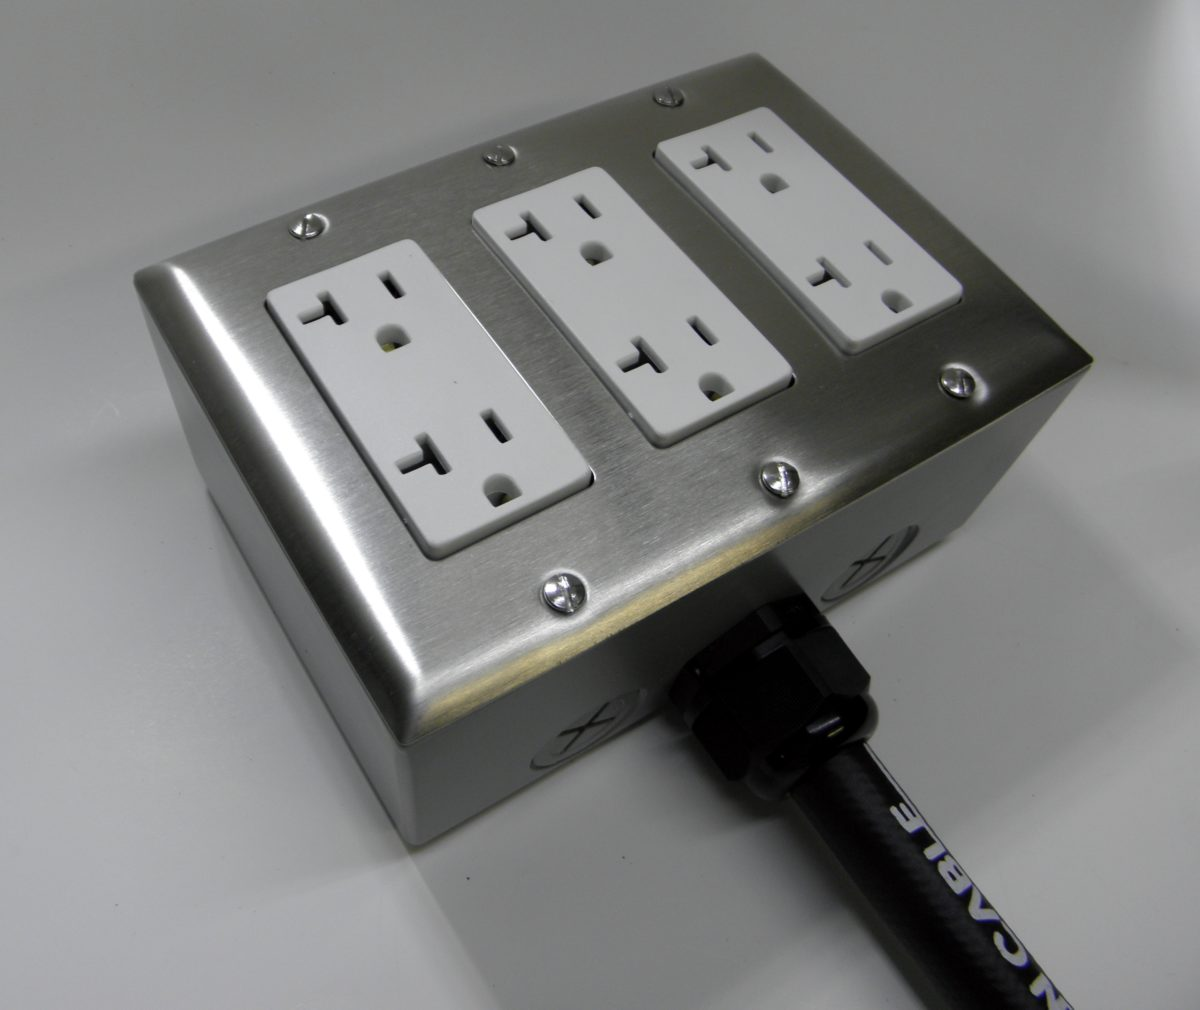 Gold Series Power Box (6 Outlet Receptacle Strip) - Cullen Cable